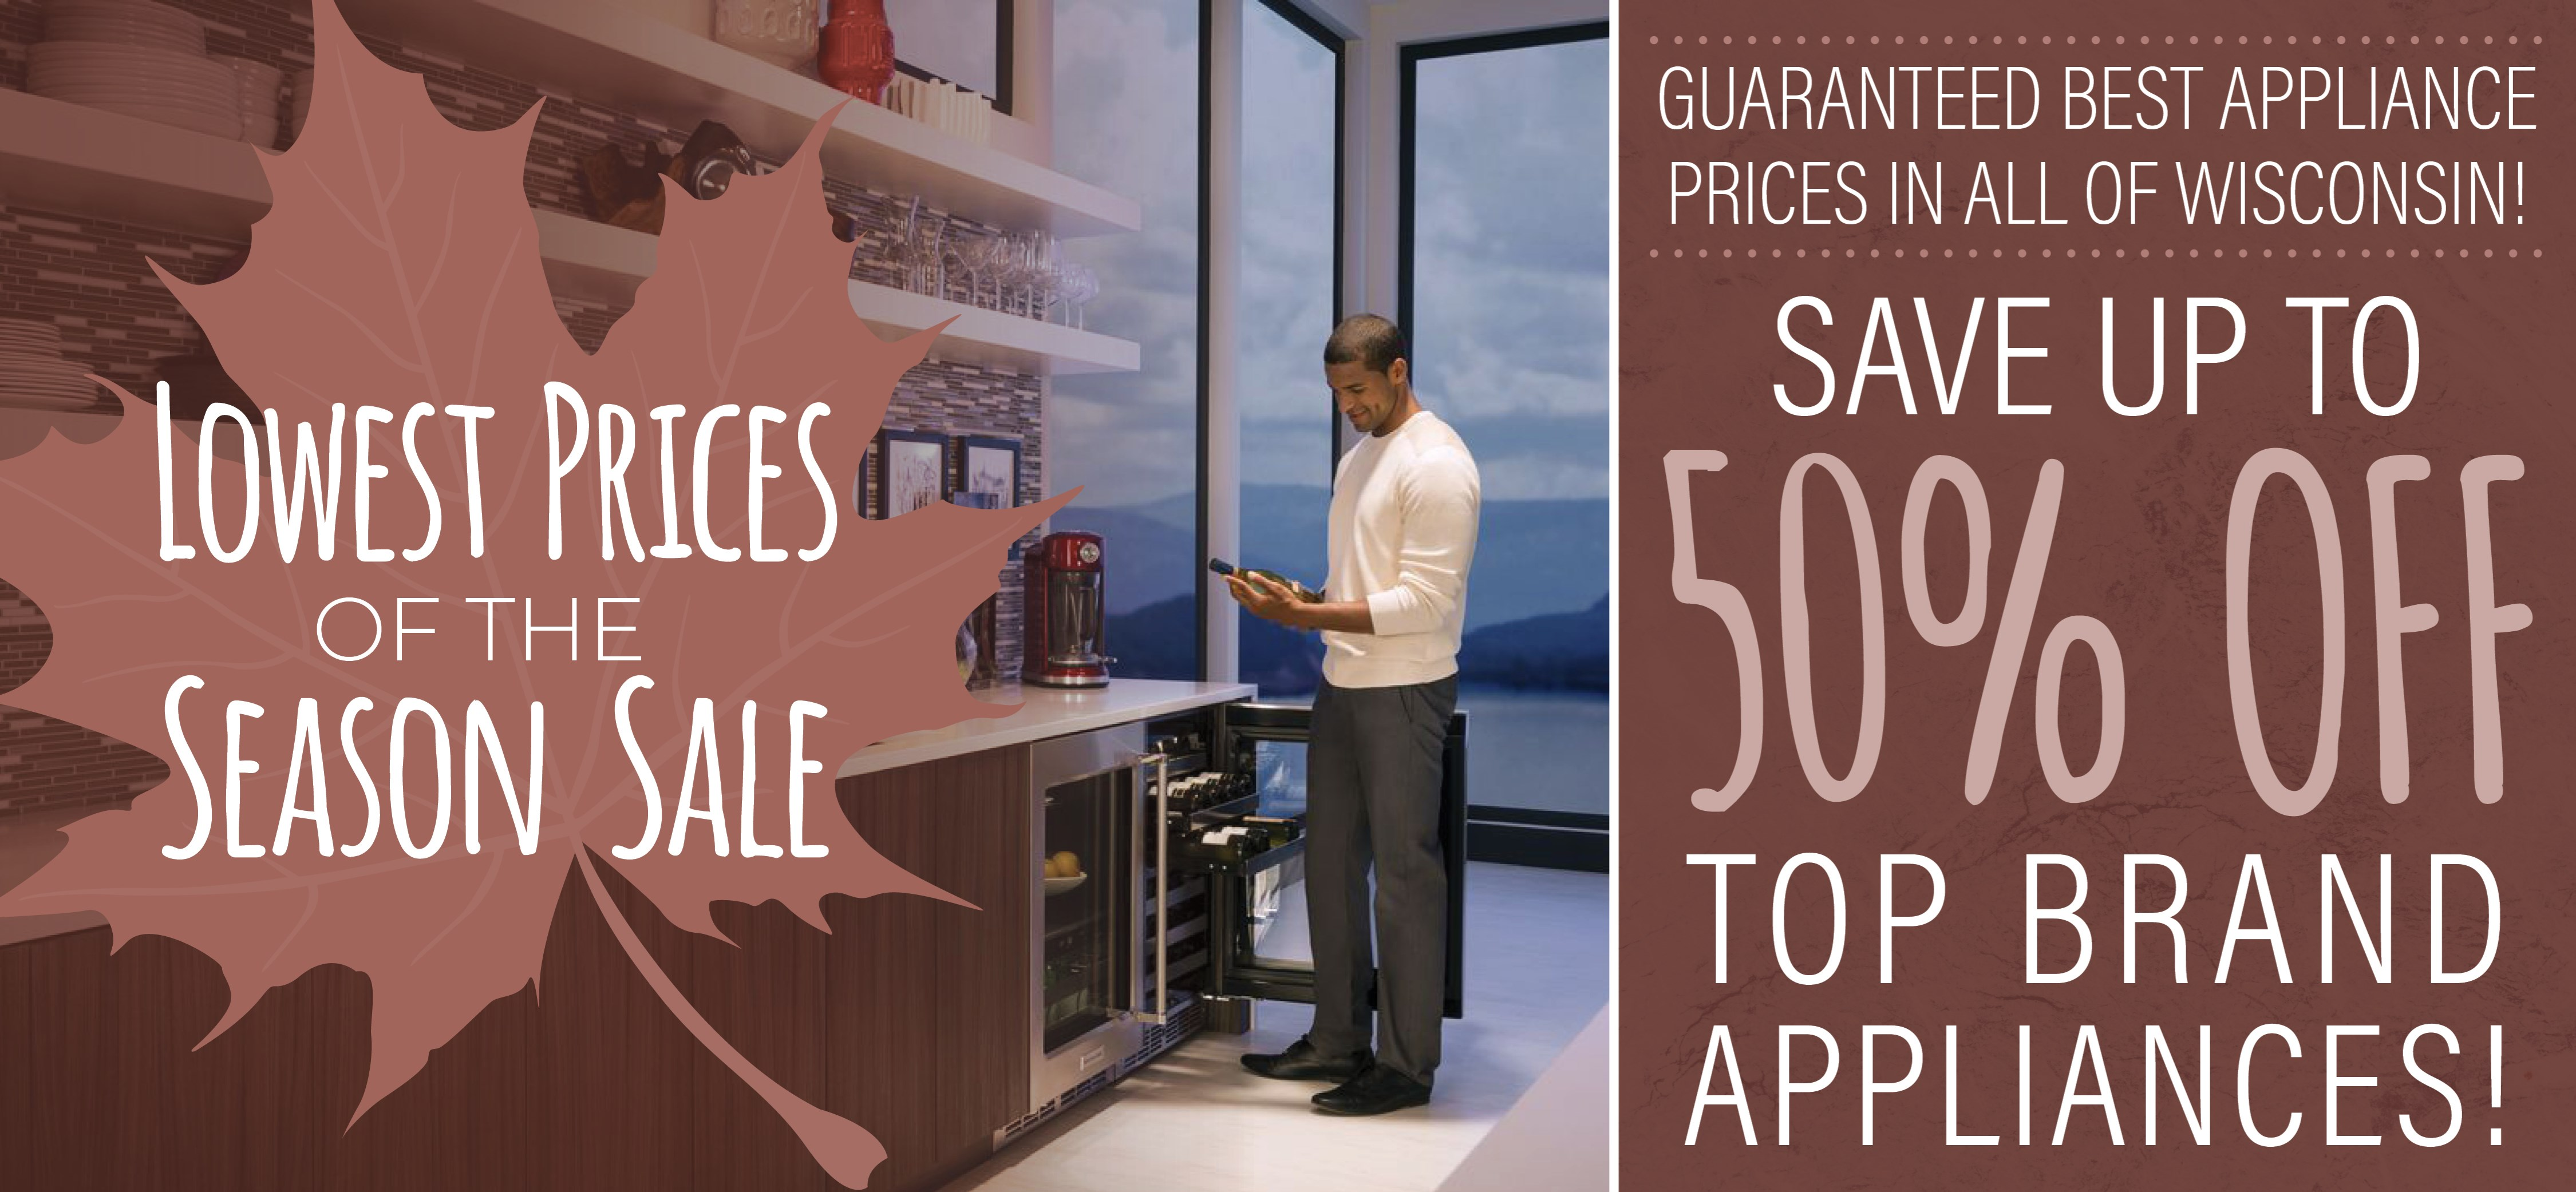 Furniture & ApplianceMart Lowest Prices of the Season